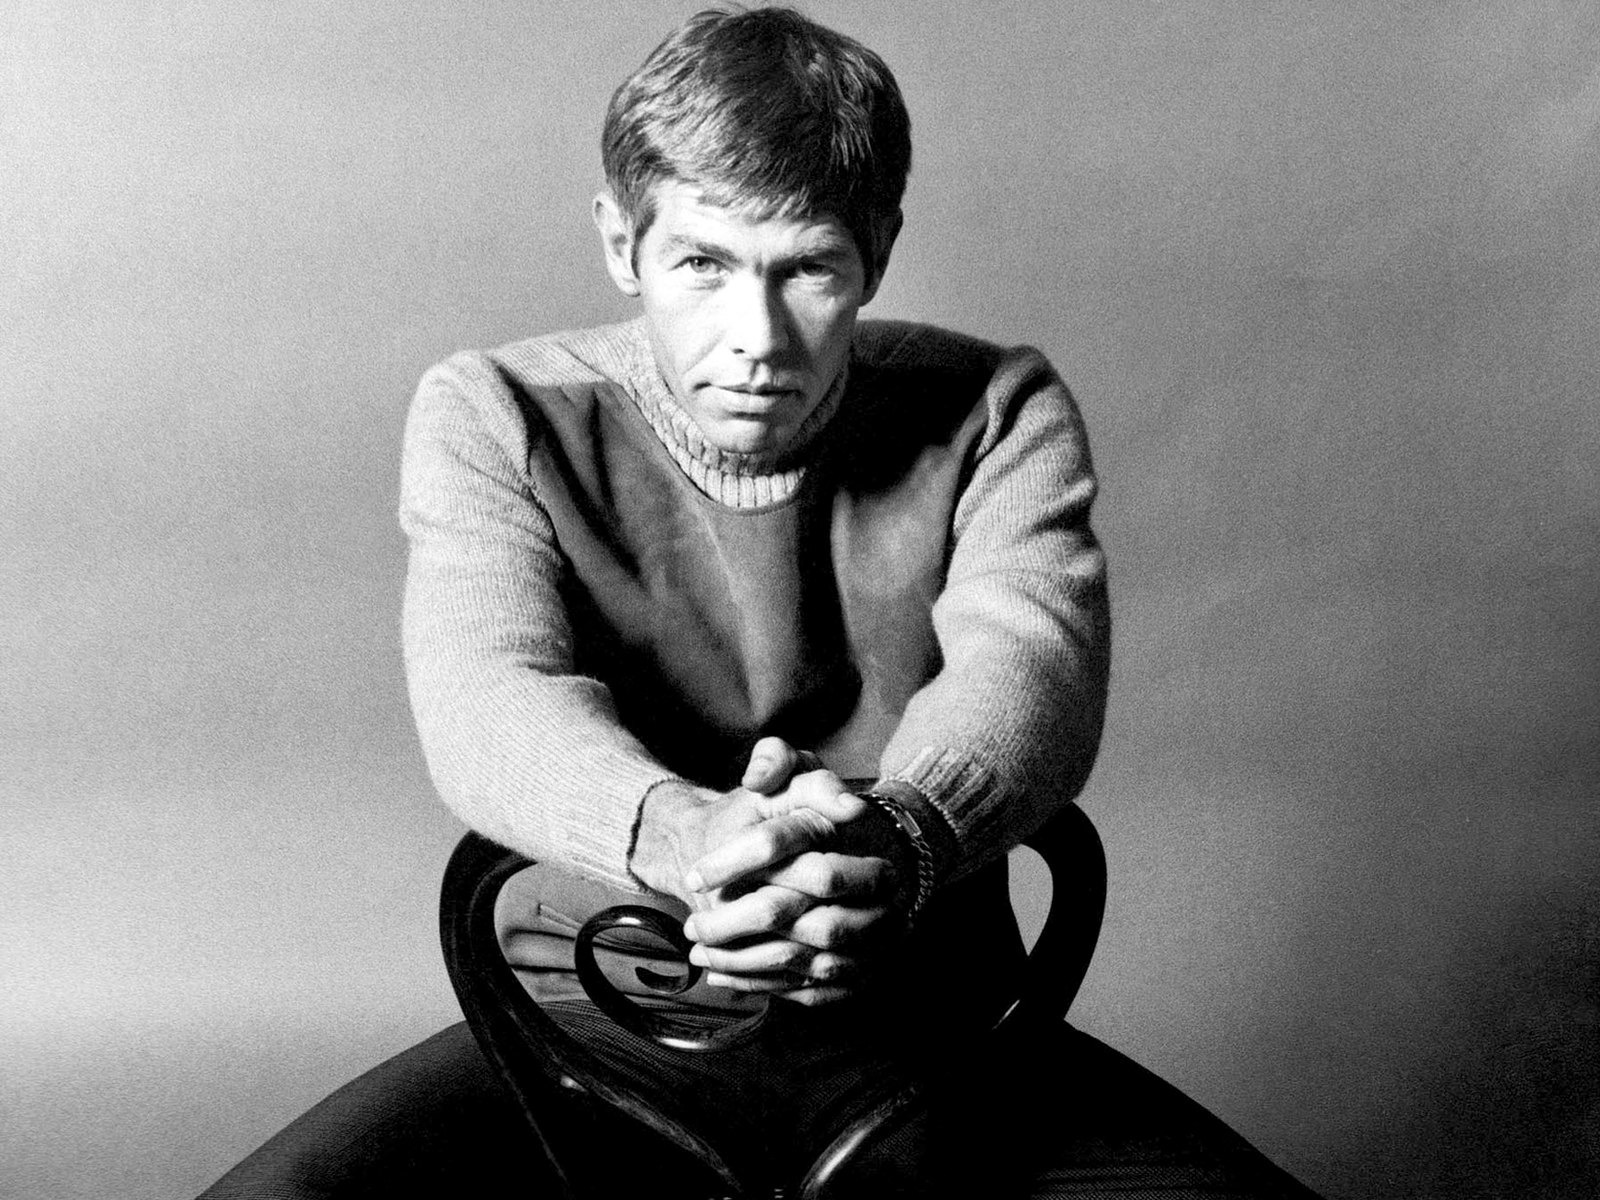 james coburn died